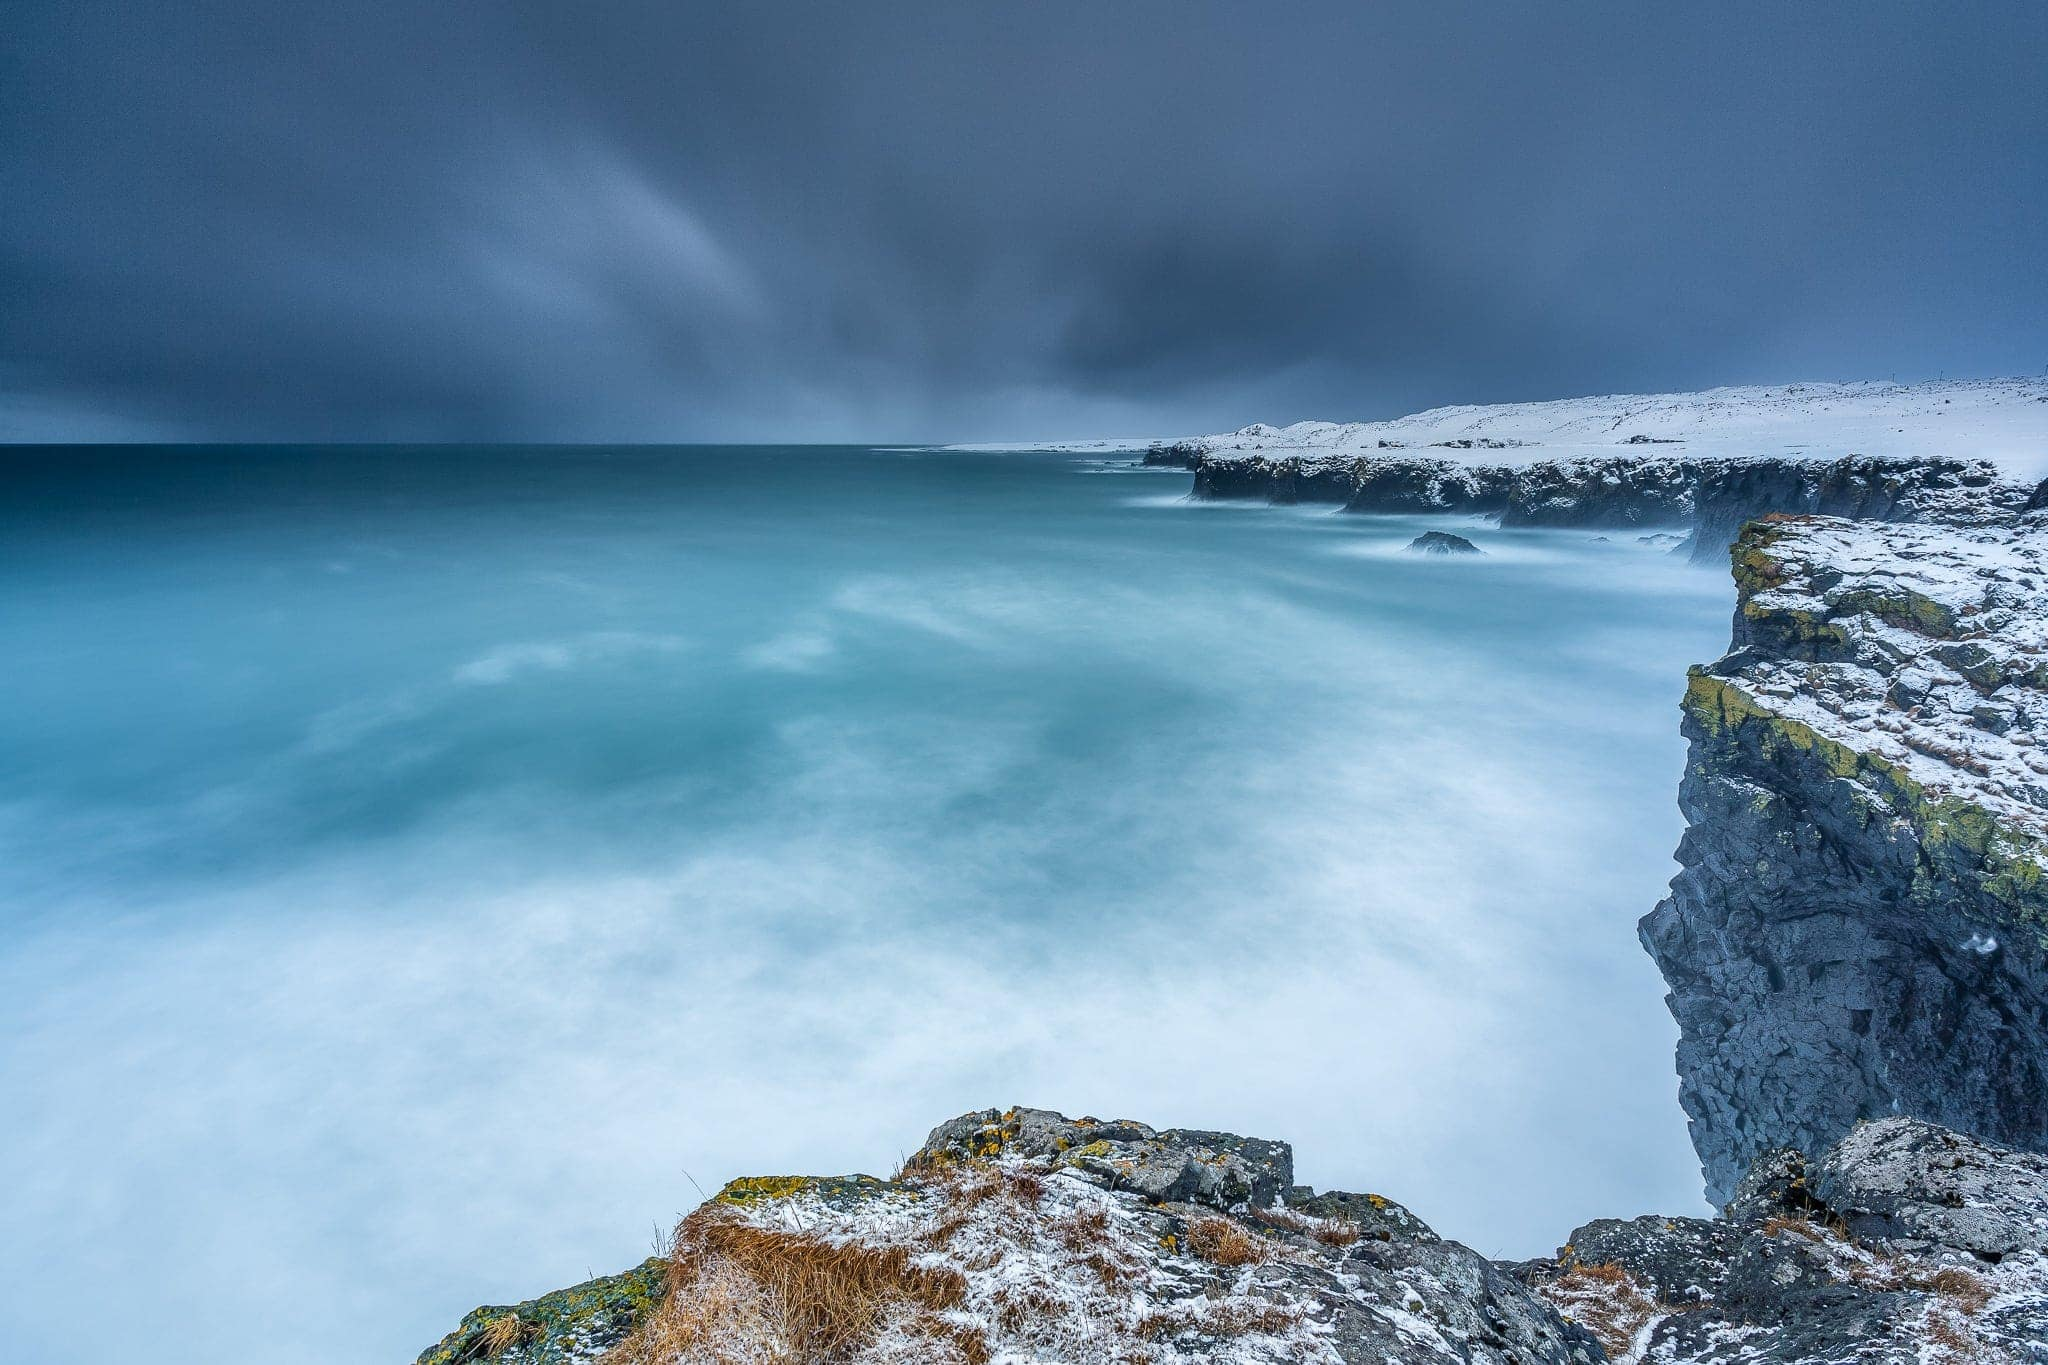 Francesco Gola Seascape Landscape Photography Iceland Blizzard Arnastarpi Snow Winter Long Exposure